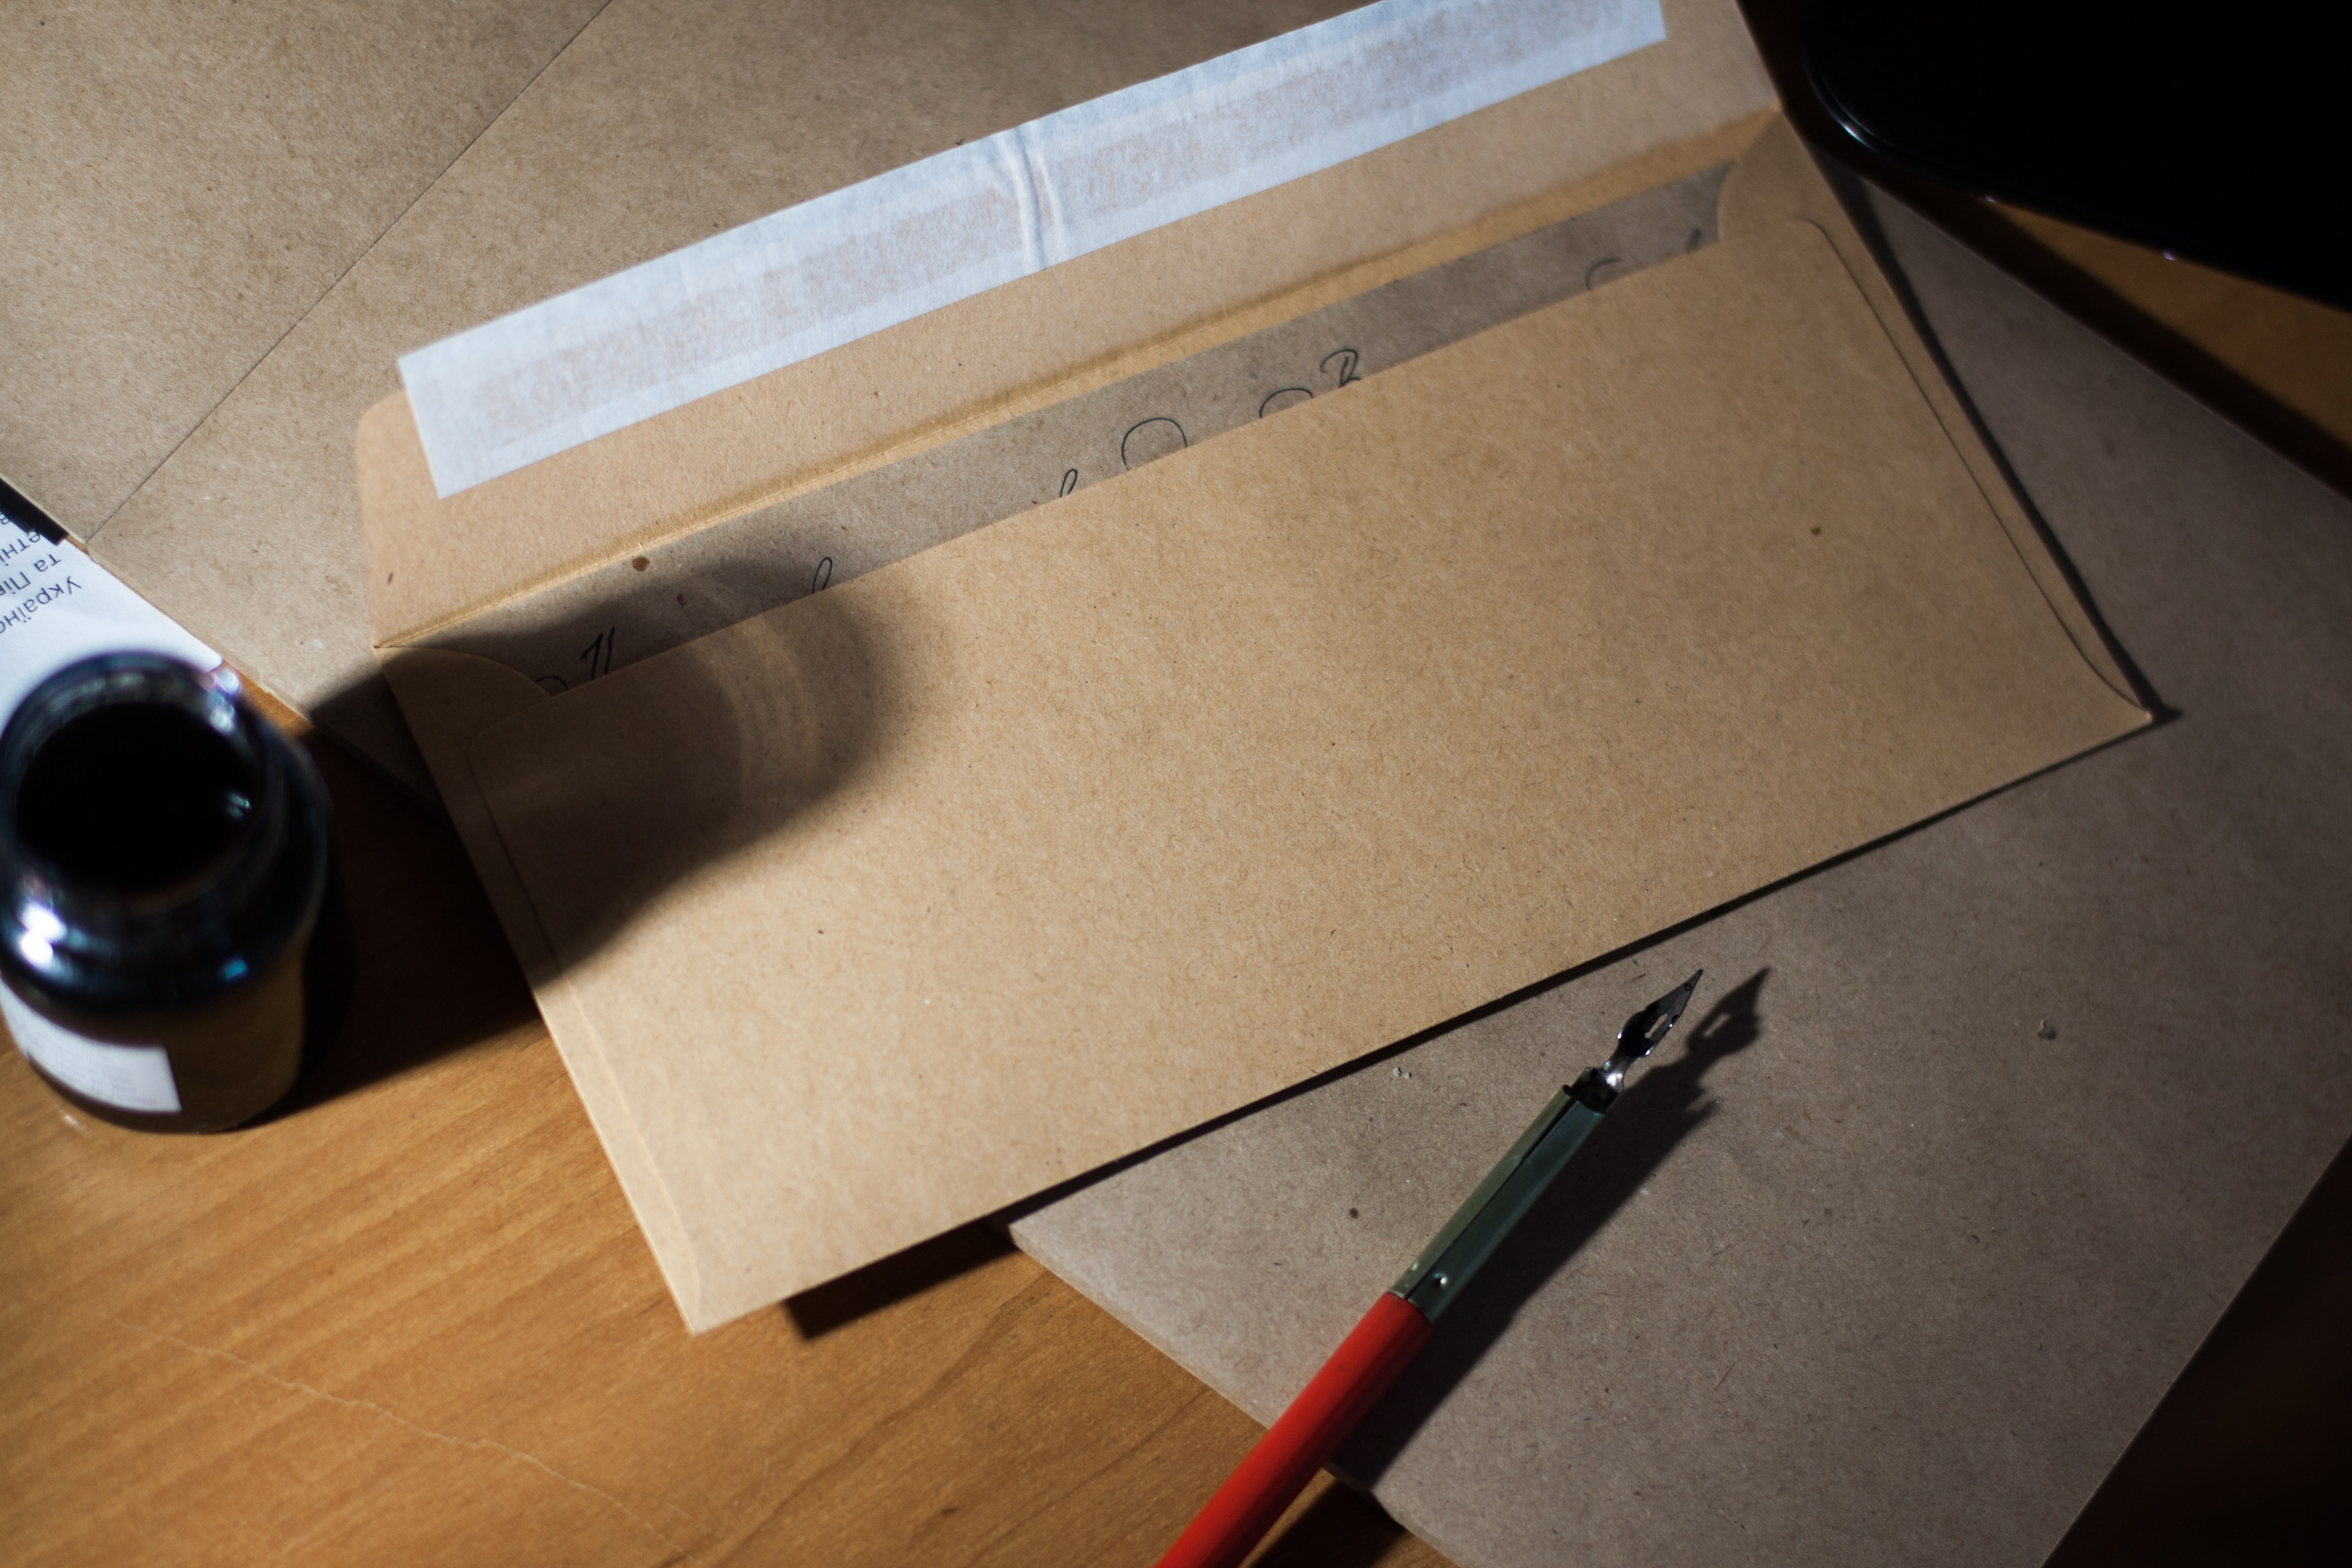 A strong brown envelope.